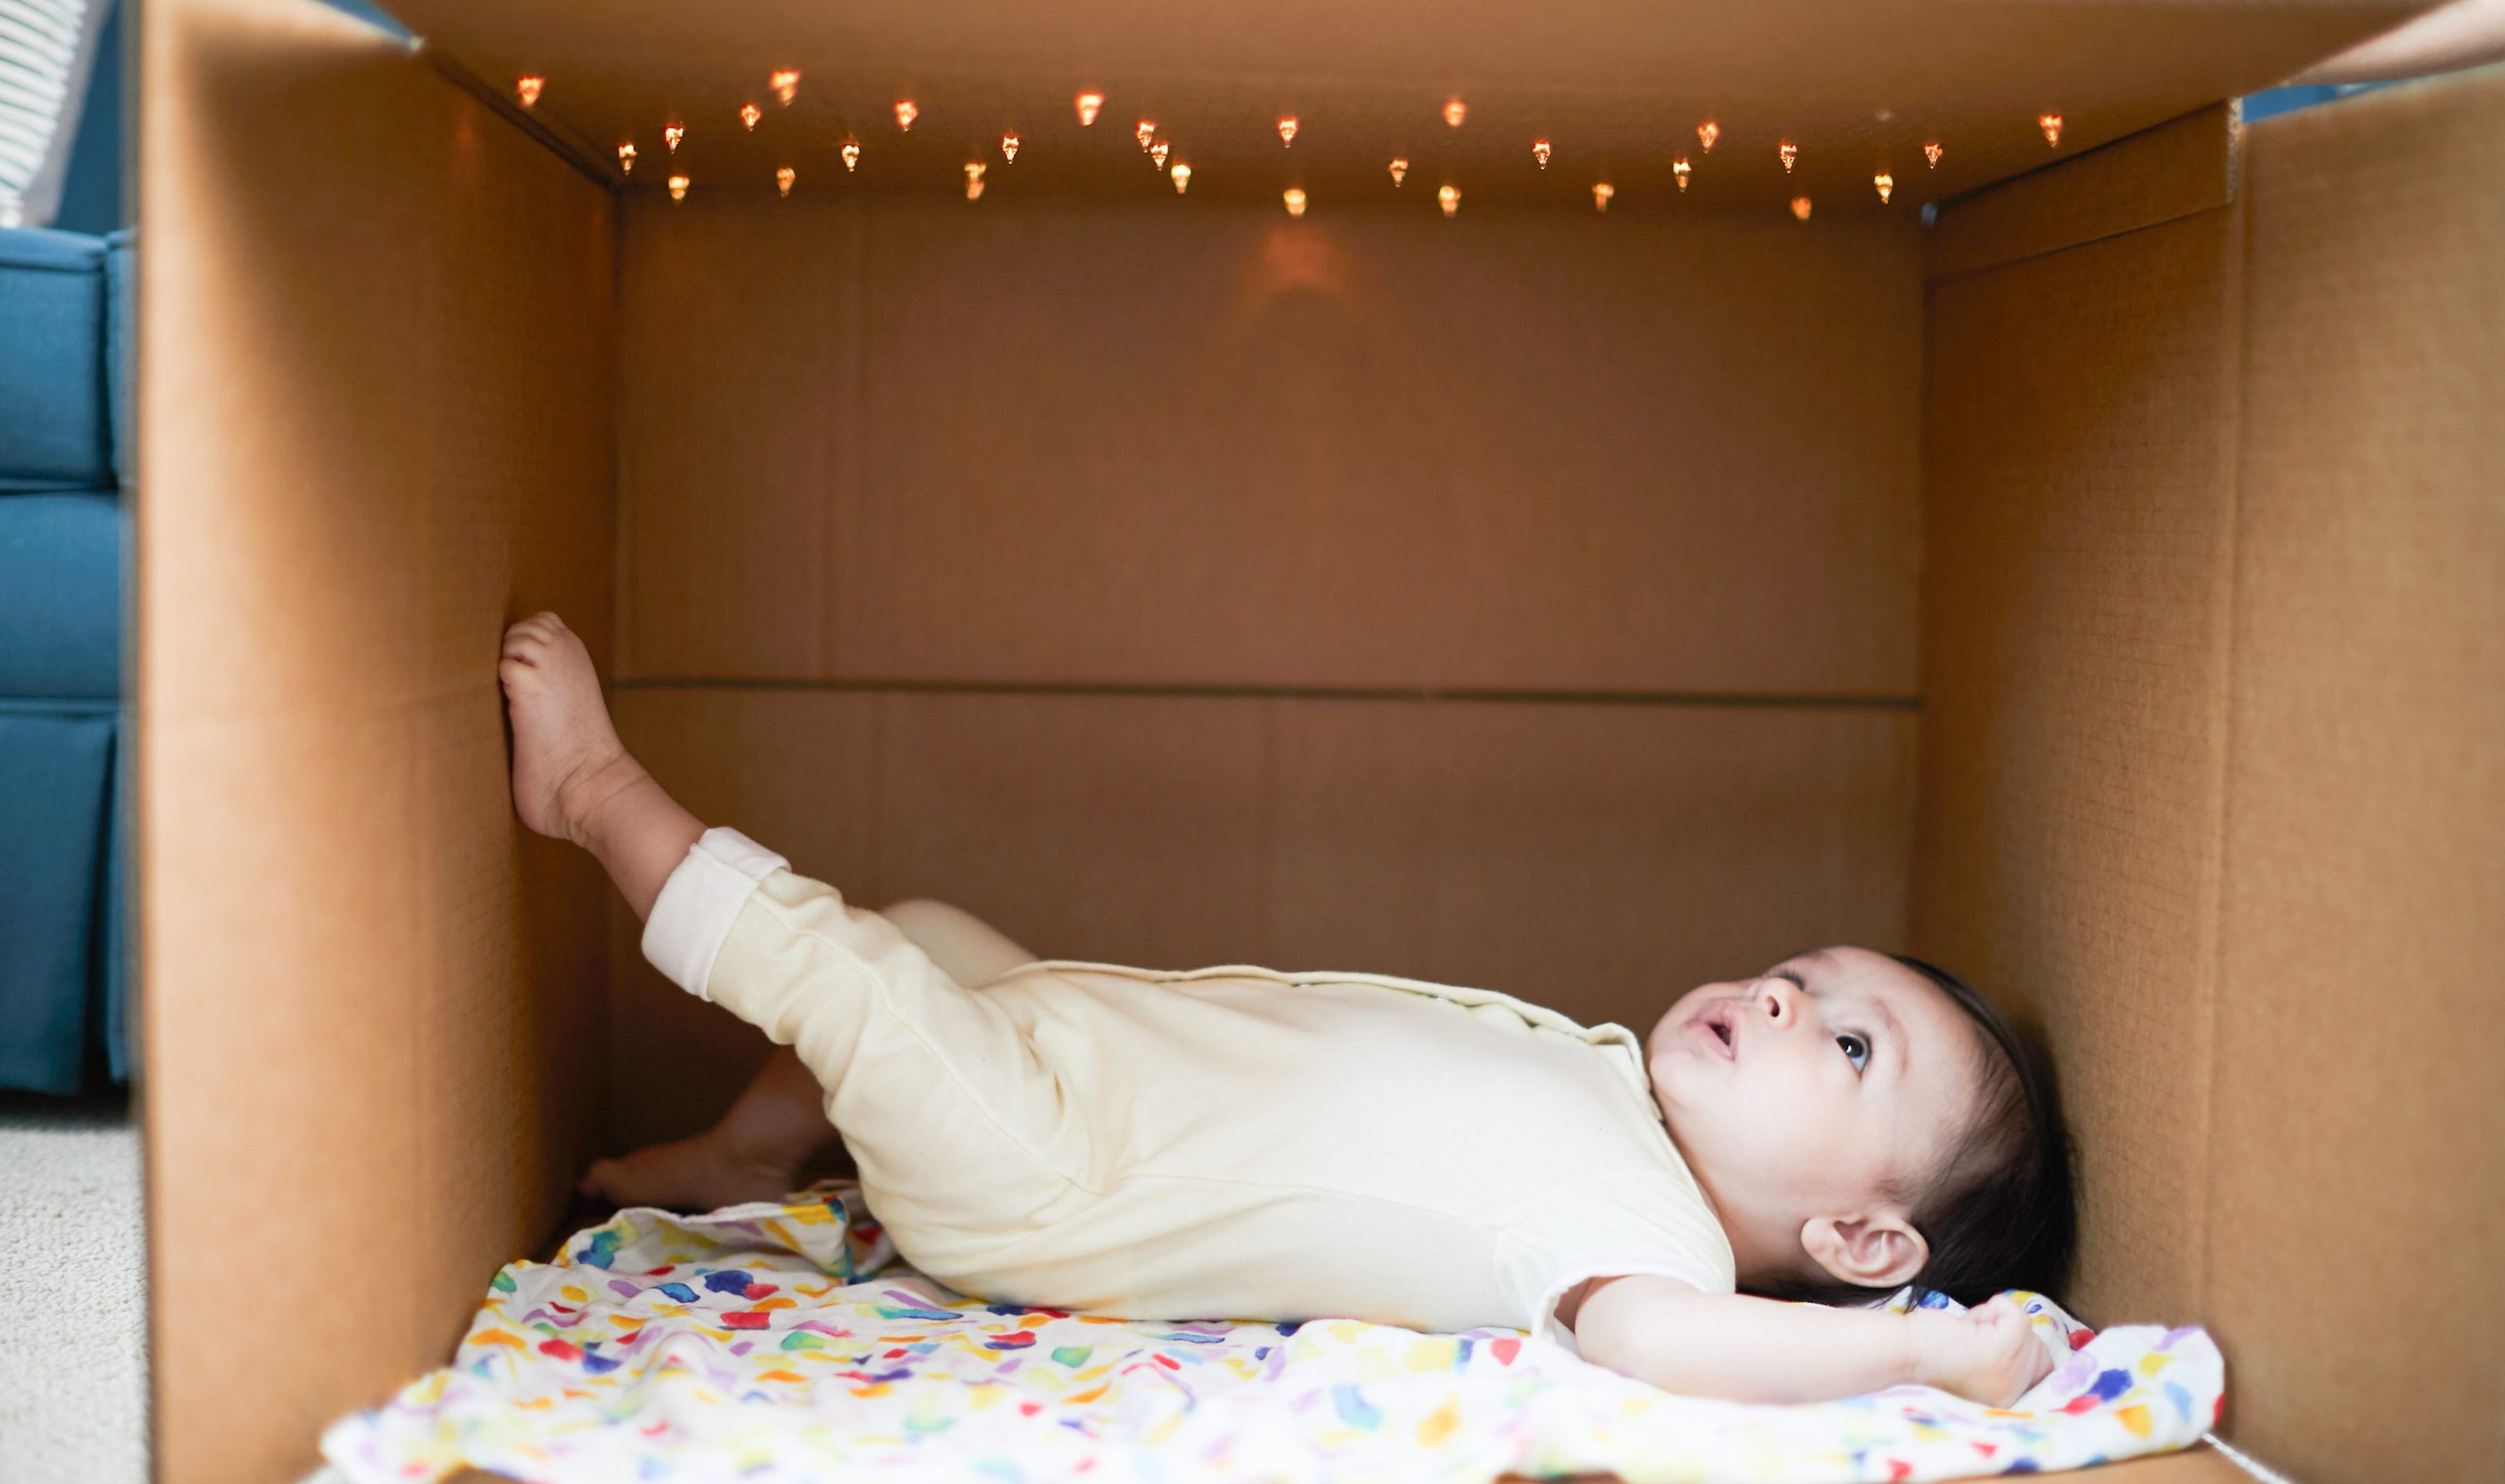 Baby laying in a cardboard box looking up at lights